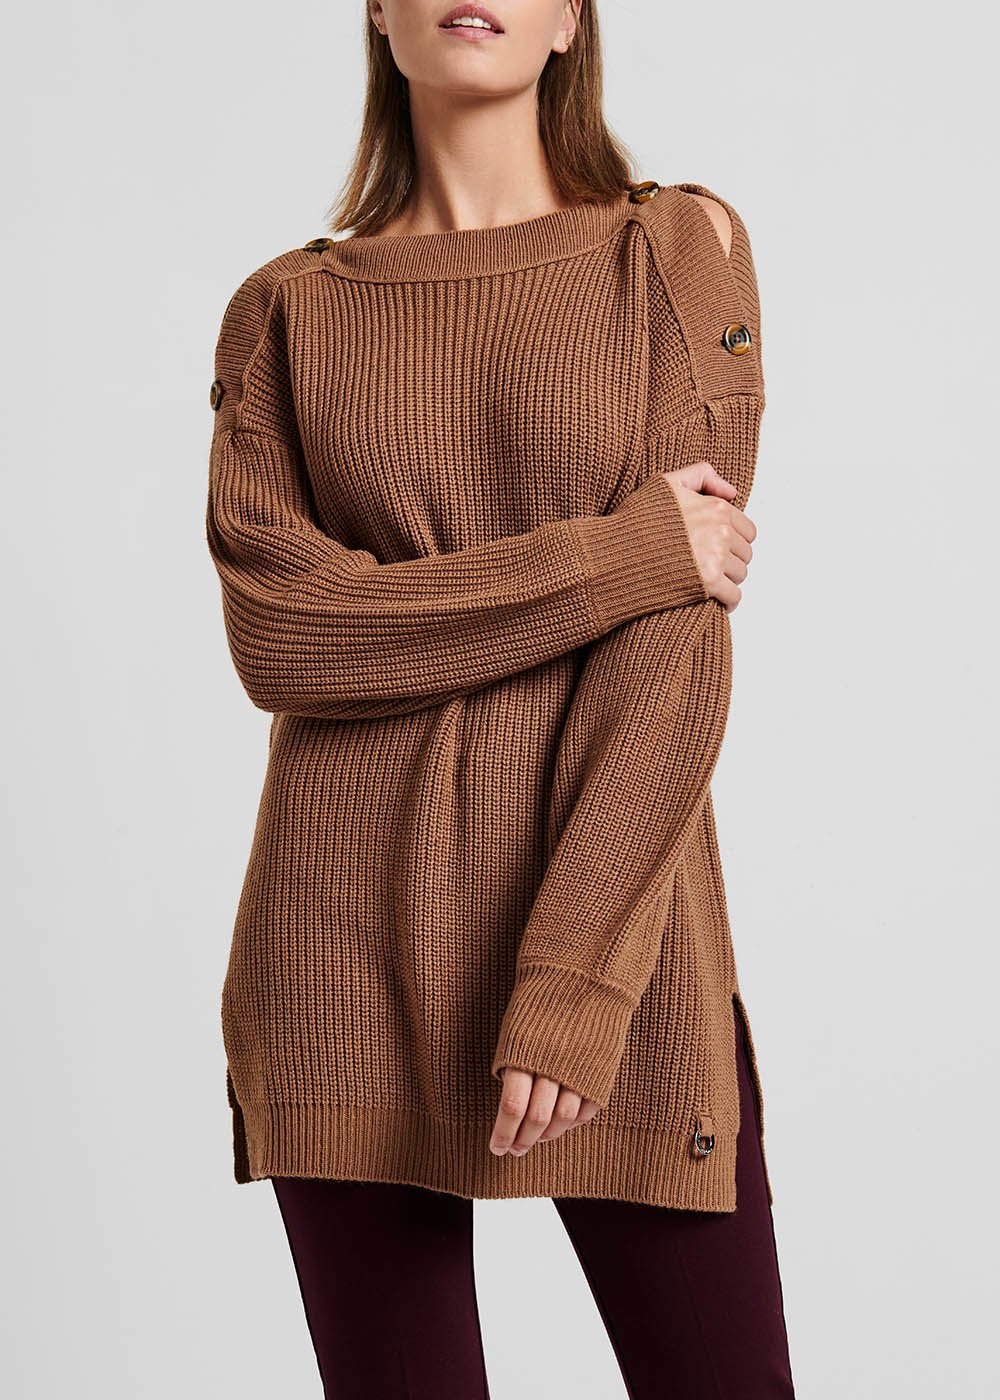 Ground-coloured sweater - Woman